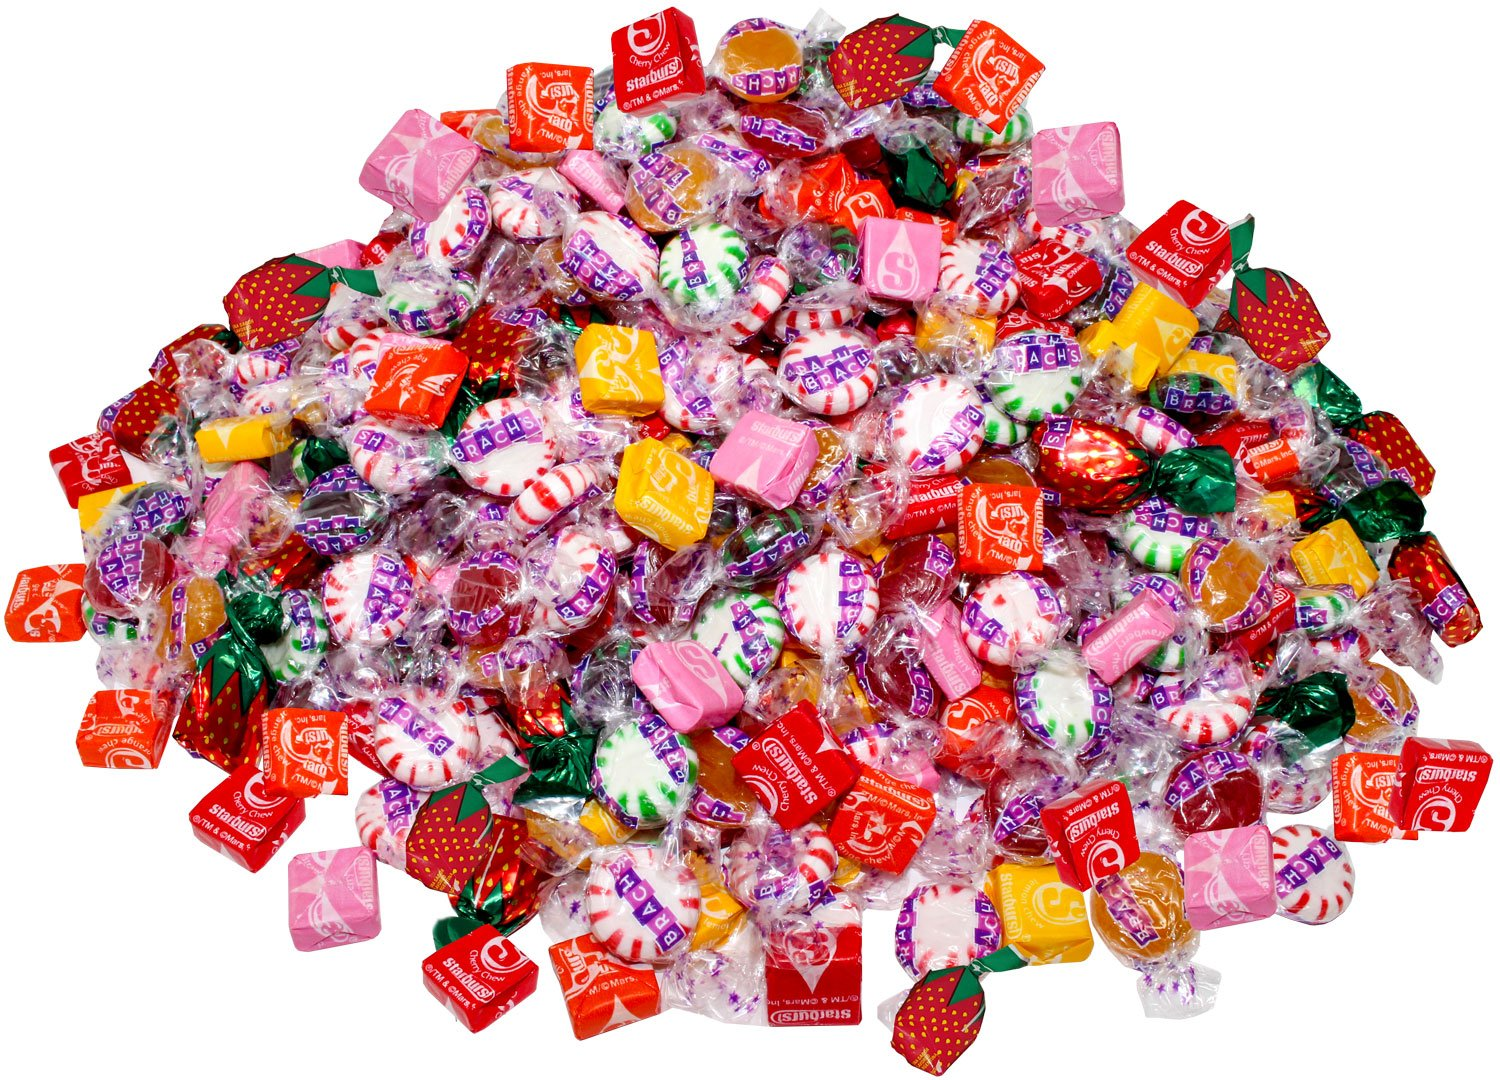 Assorted Starburst & Brach's 8.75 Lb Bulk Soft Chewy & Hard Candy Mix Value Pack 700 Pcs (140 oz) by Assortit